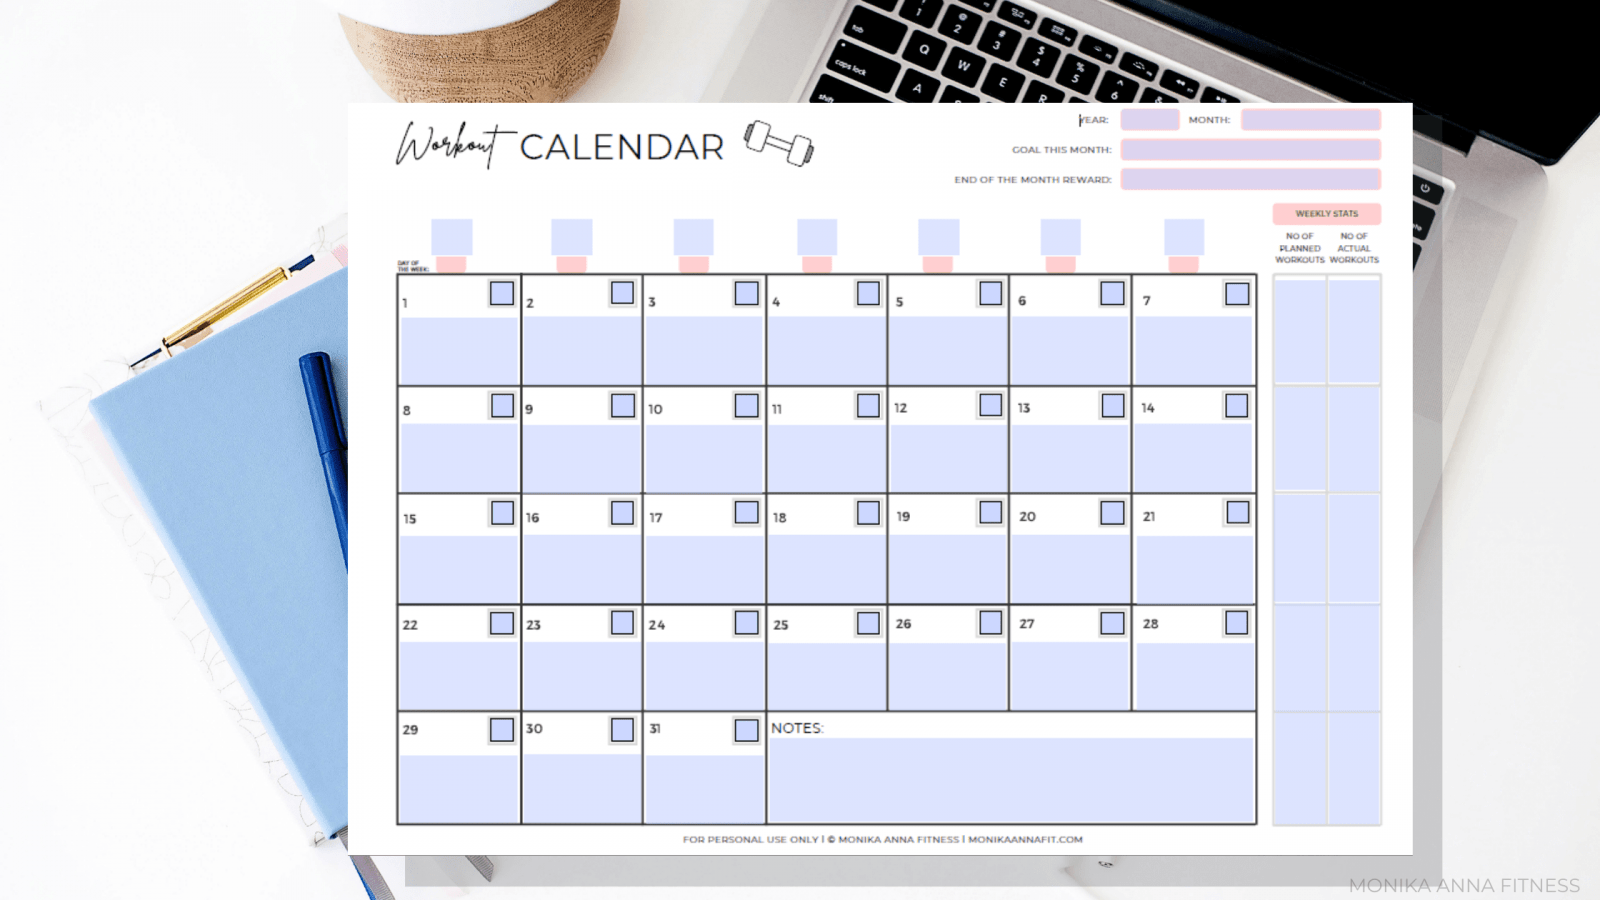 We all have busy days packed with everything from dentist appointments to the kids' soccer practices to the conference calls we aren't exactly looking forward to. Monthly Workout Calendar Exercise Planner Monika Anna Fitness